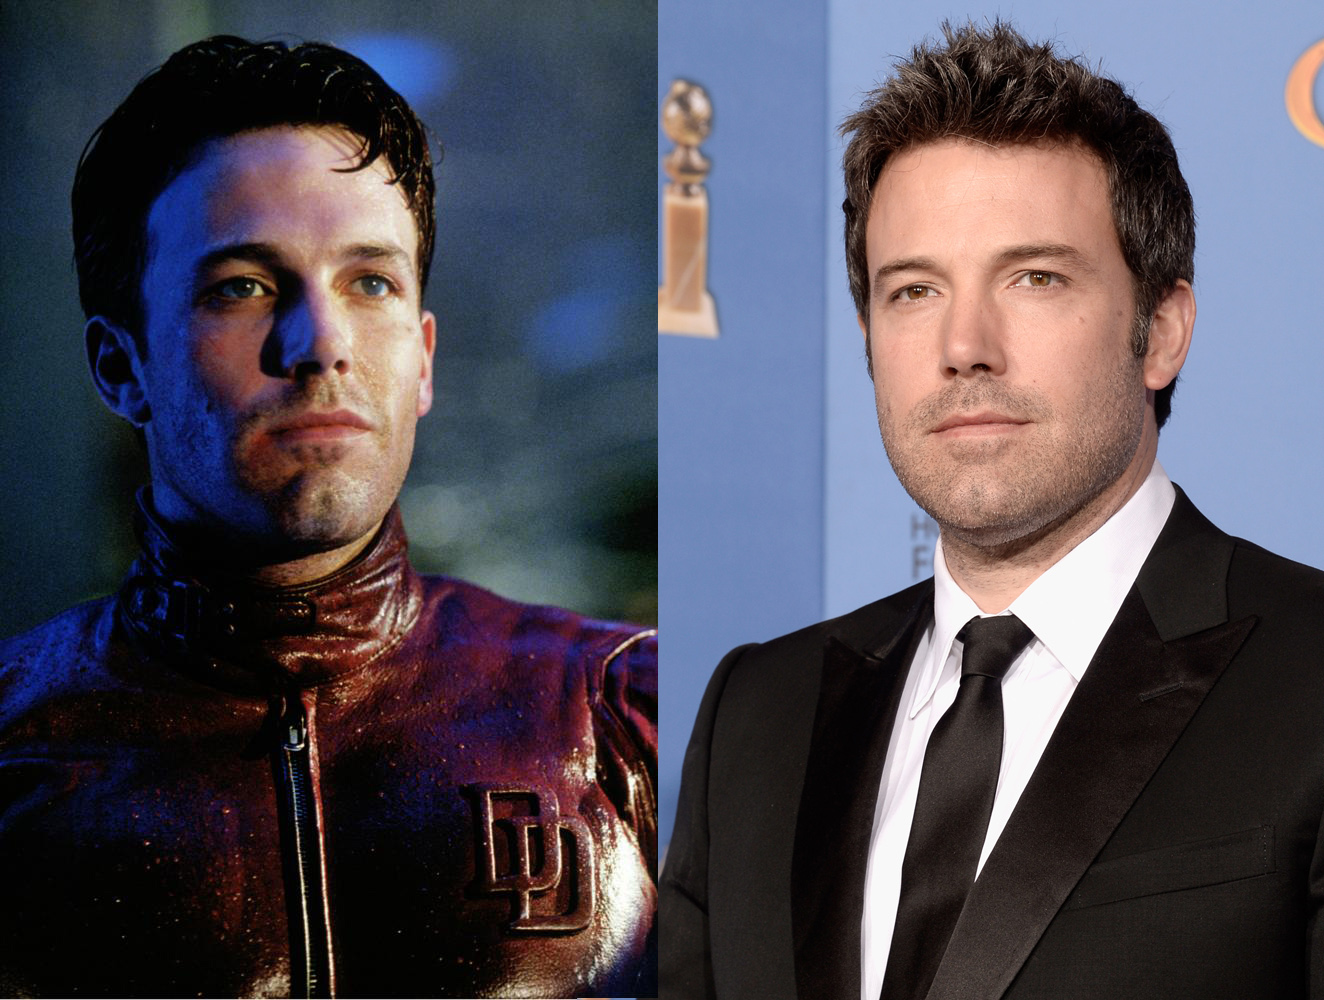 Ben Affleck has shaken off his regrettable Daredevil days, winning critical acclaim as both an actor and director for films like Argo. But he's found himself the butt of superhero jokes again as he puts the tights back on to play Batman in 2016.